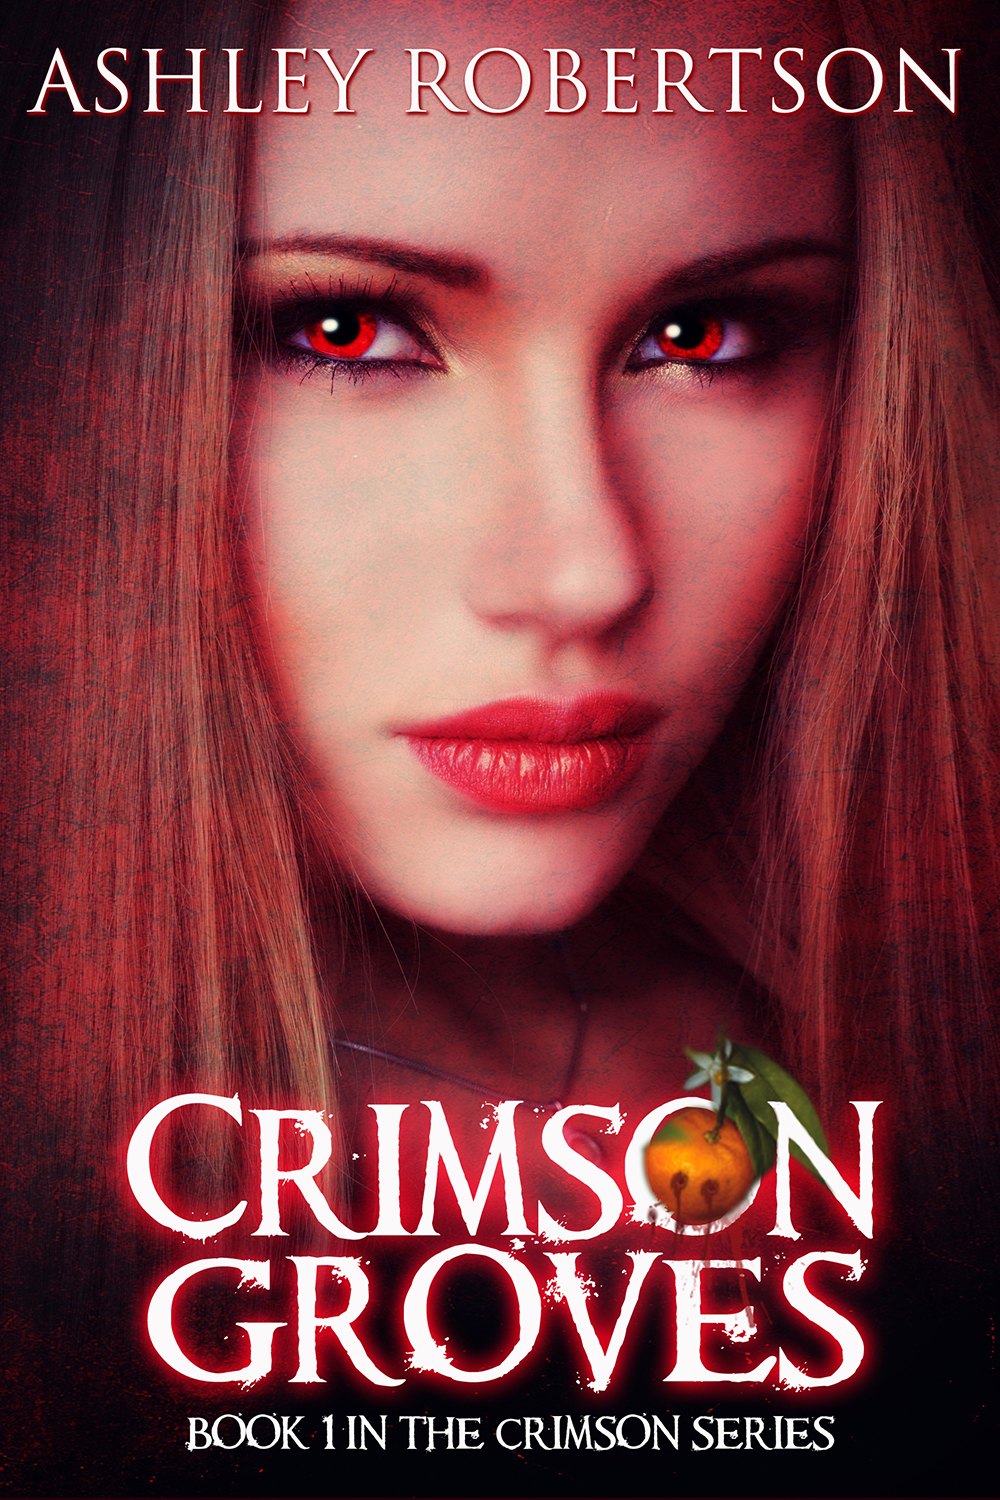 Crimson Groves Ashley Robertson